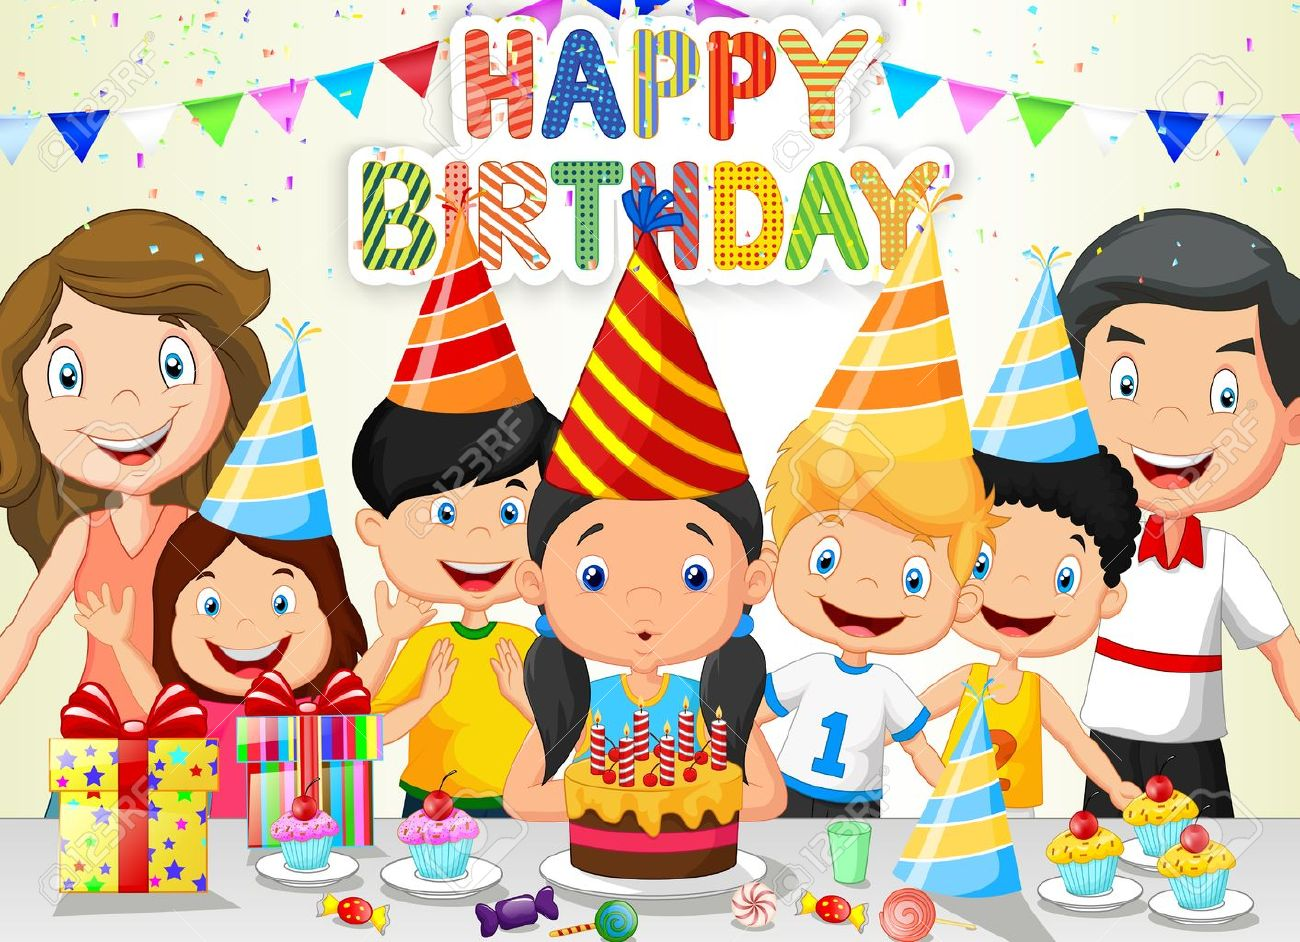 free birthday celebration clipart ; 36777829-happy-girl-cartoon-blowing-birthday-candles-with-his-family-and-friends